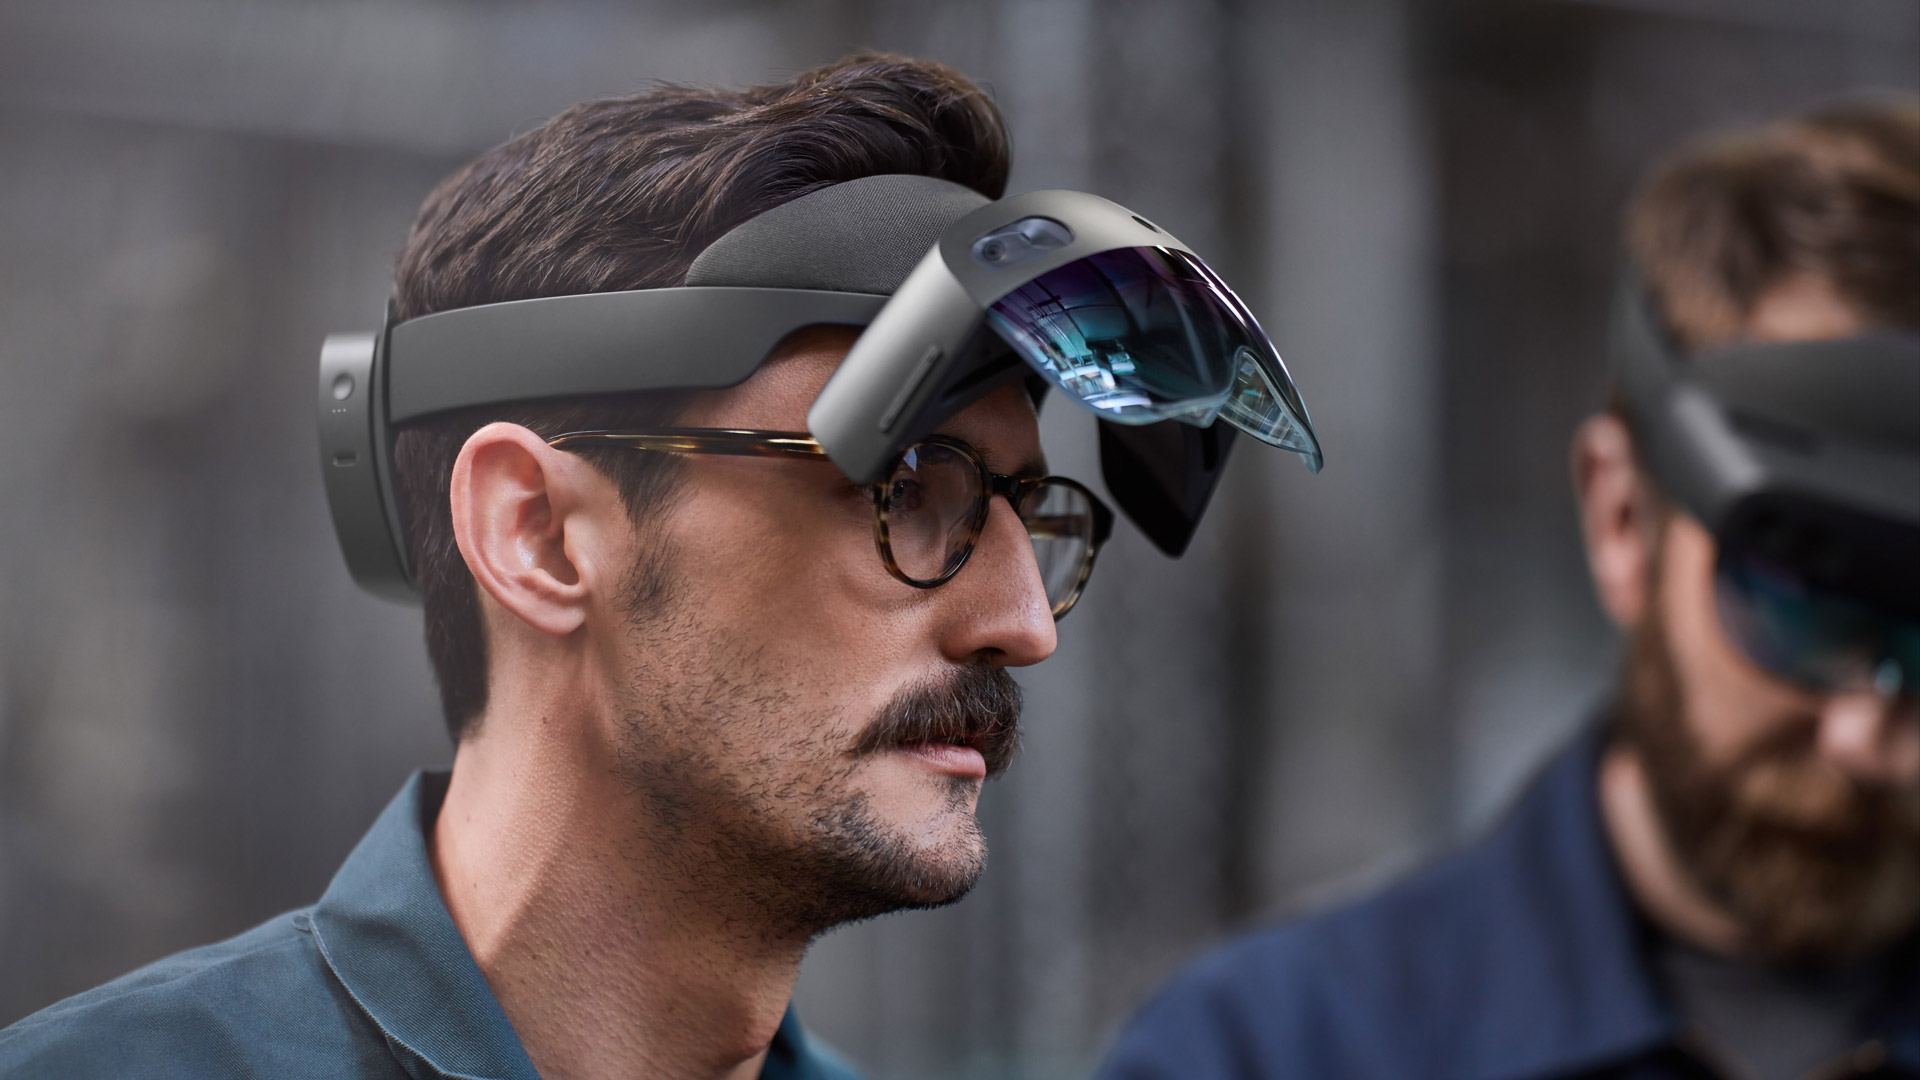 Report: HoloLens 2 Could Go on Sale in September – Road to VR